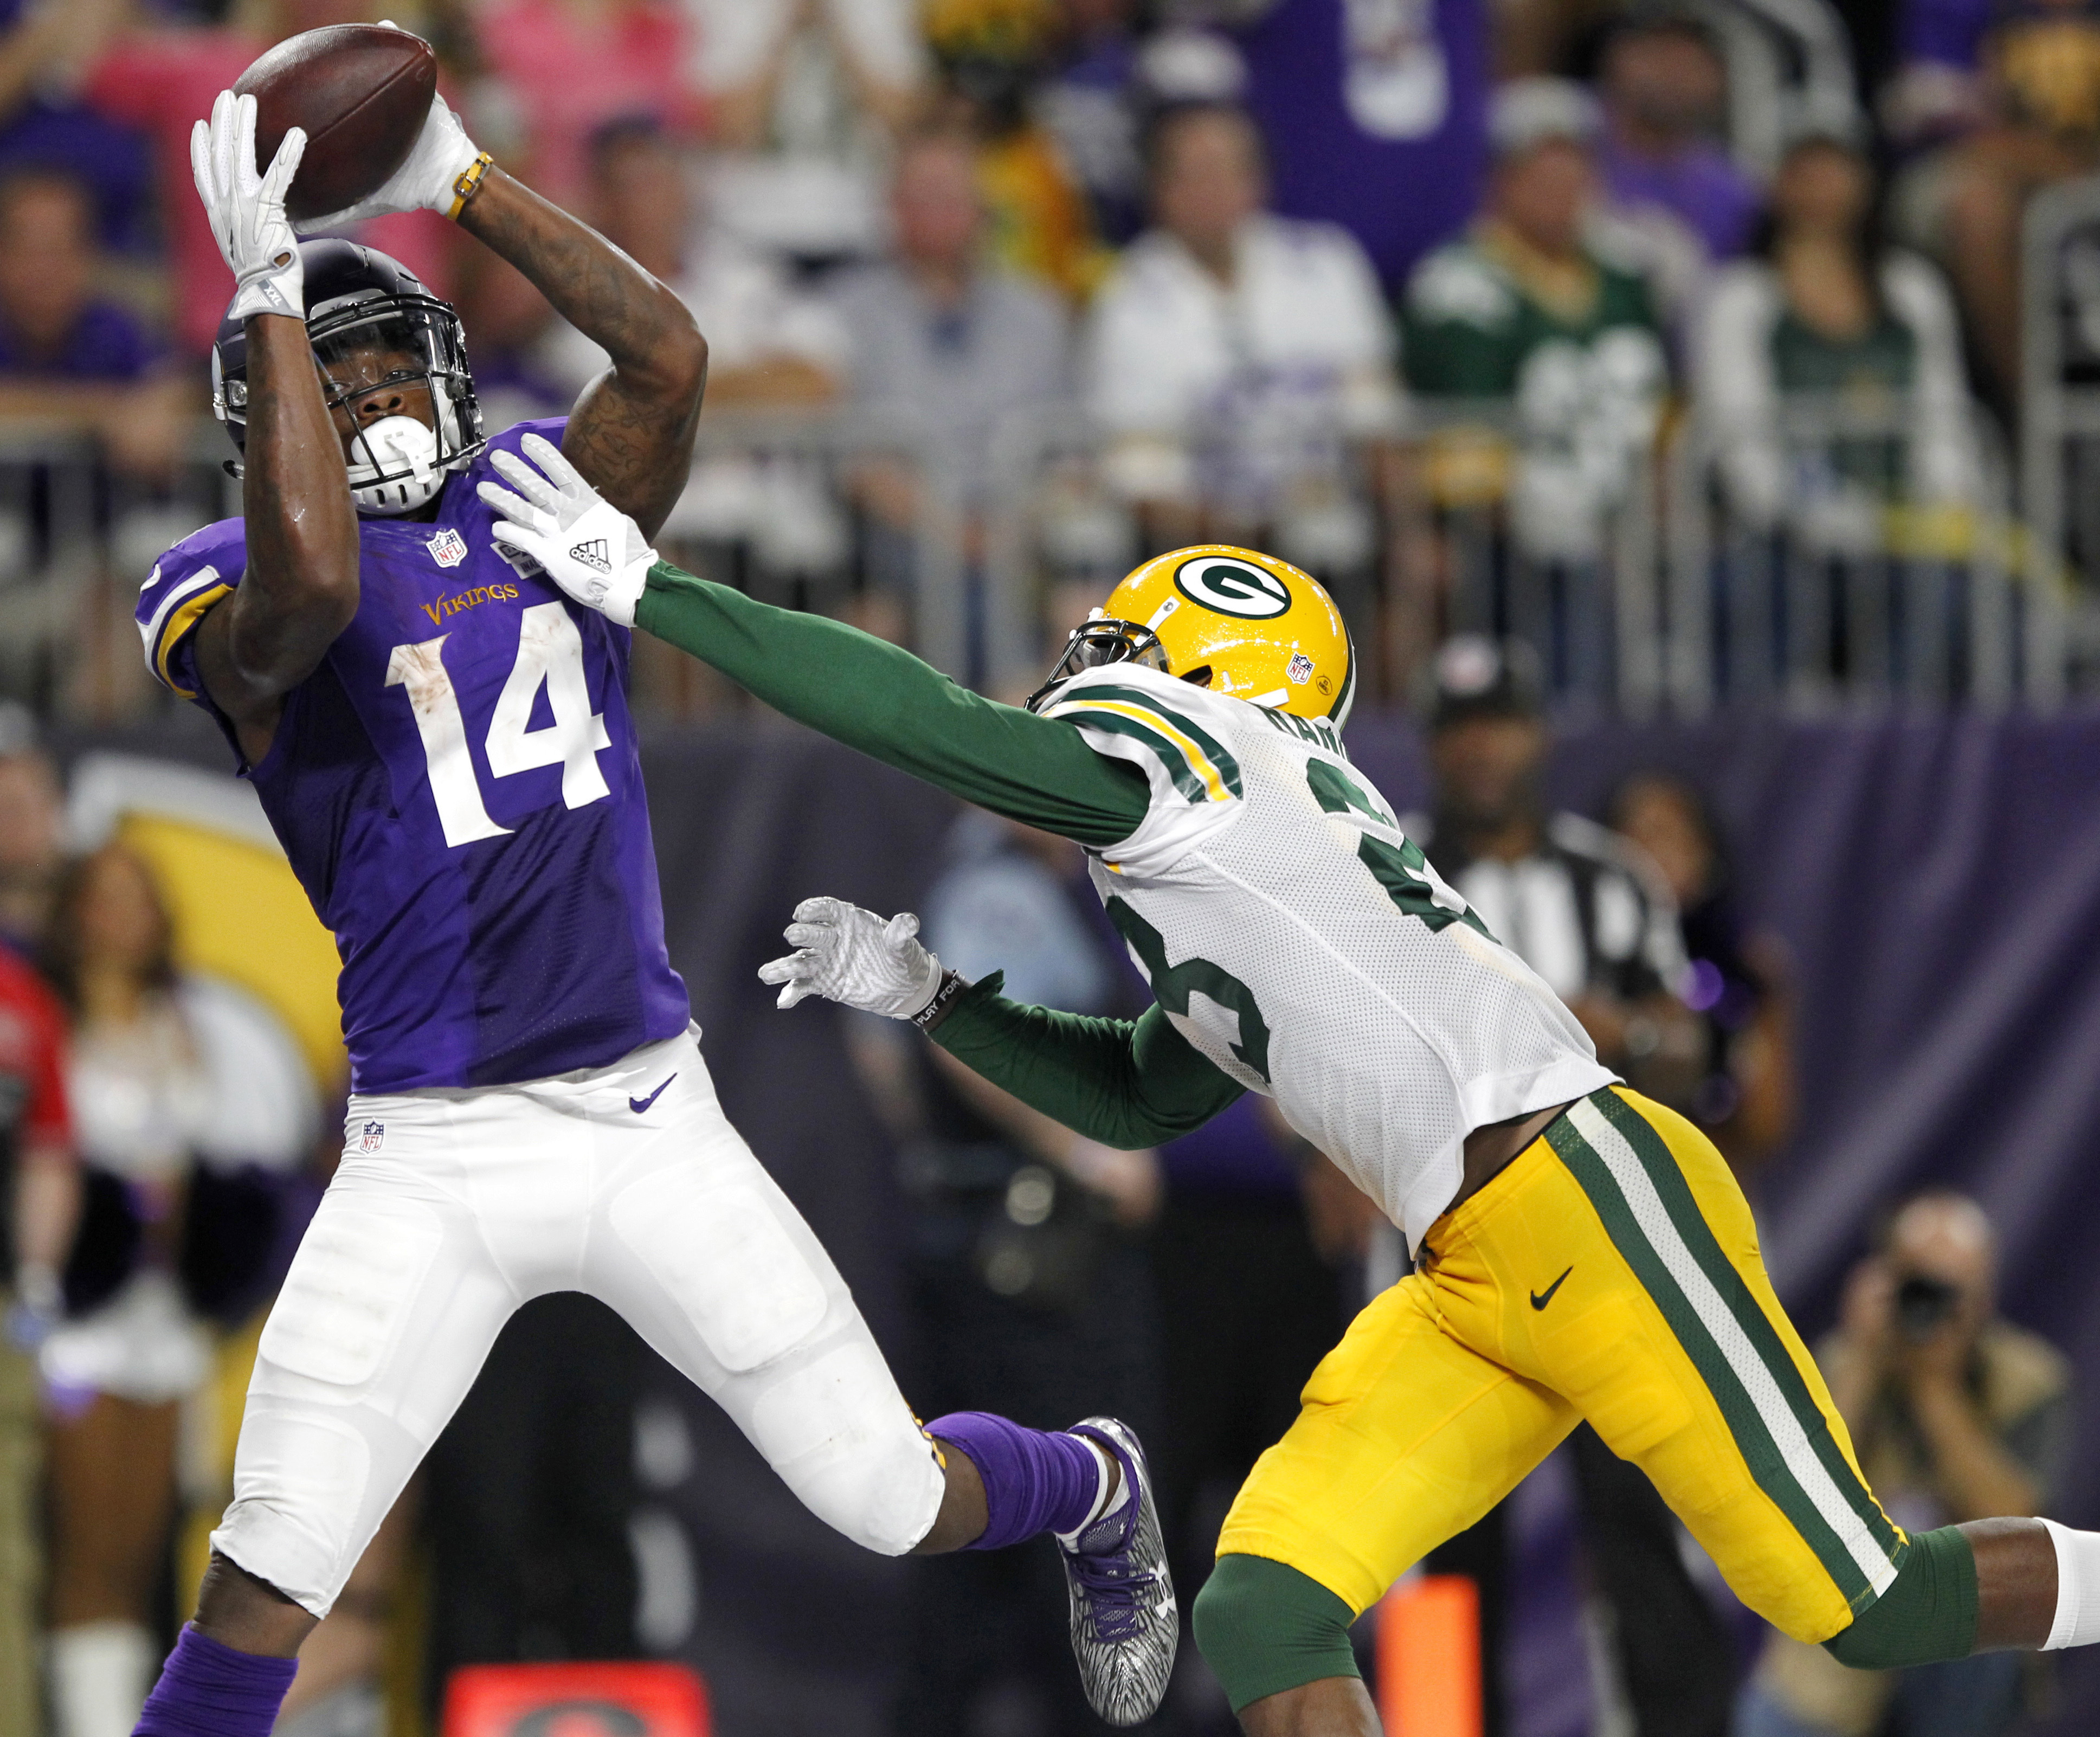 FILE - In this Sept. 18, 2016, file photo, Minnesota Vikings wide receiver Stefon Diggs (14) catches a 25-yard touchdown pass over Green Bay Packers cornerback Damarious Randall, right, during the second half of an NFL football game in Minneapolis.  The D